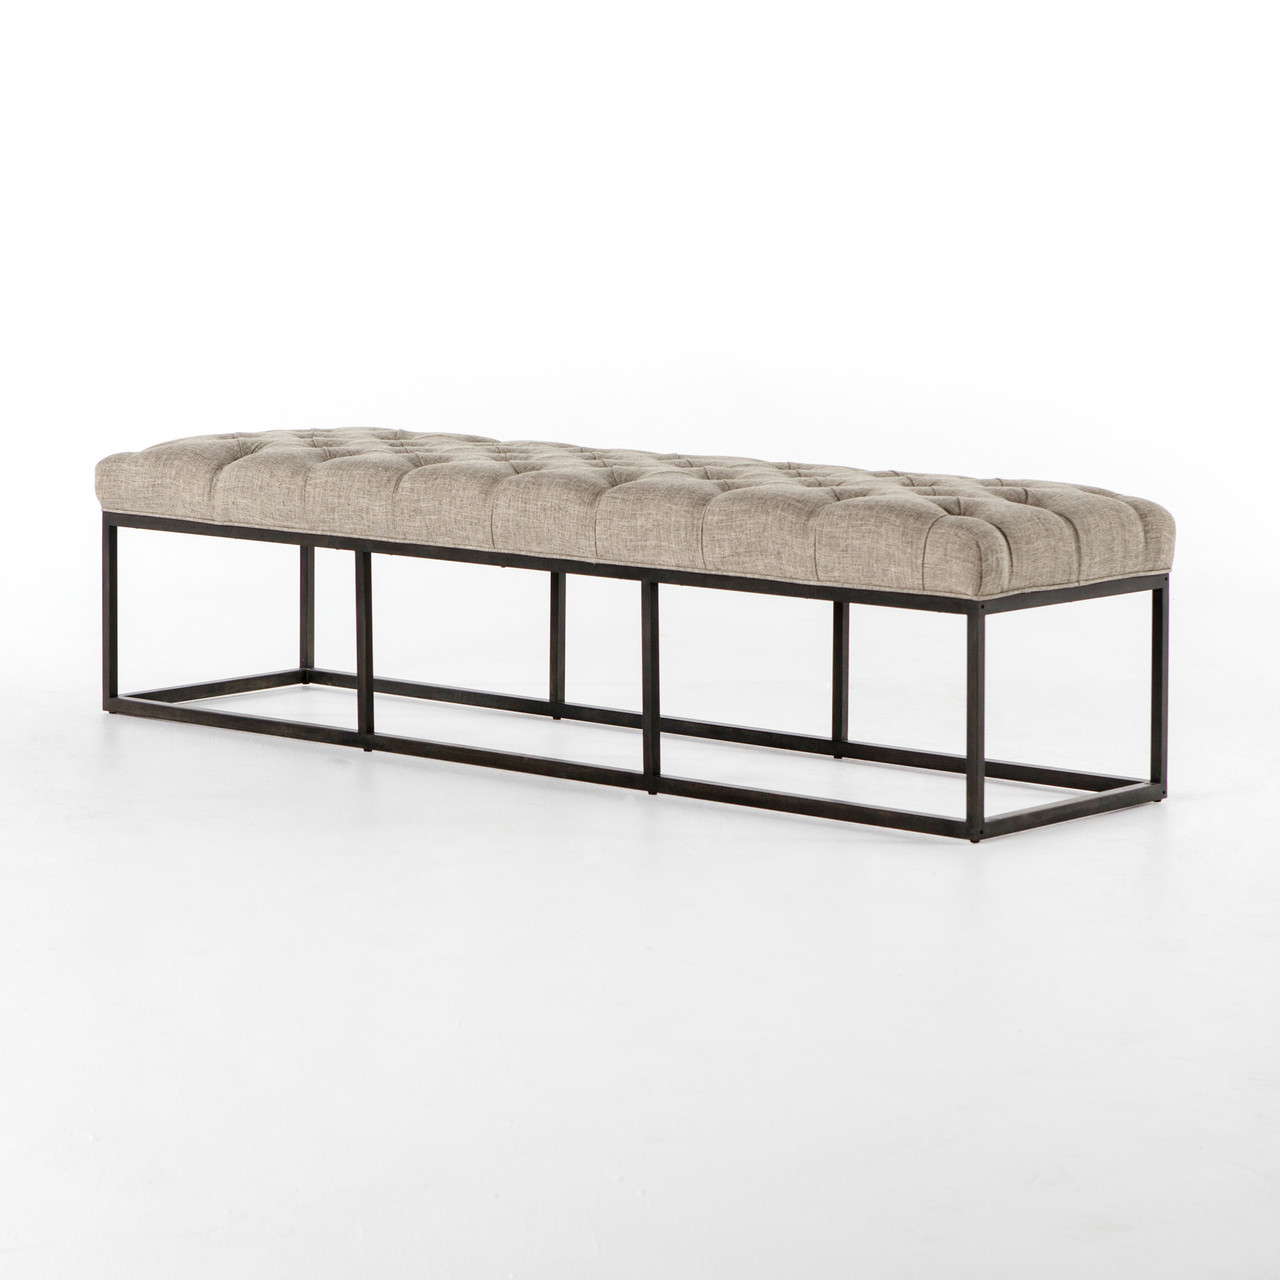 Fabulous Bordeaux Industrial Metal Upholstered Dining Bench 72 Onthecornerstone Fun Painted Chair Ideas Images Onthecornerstoneorg